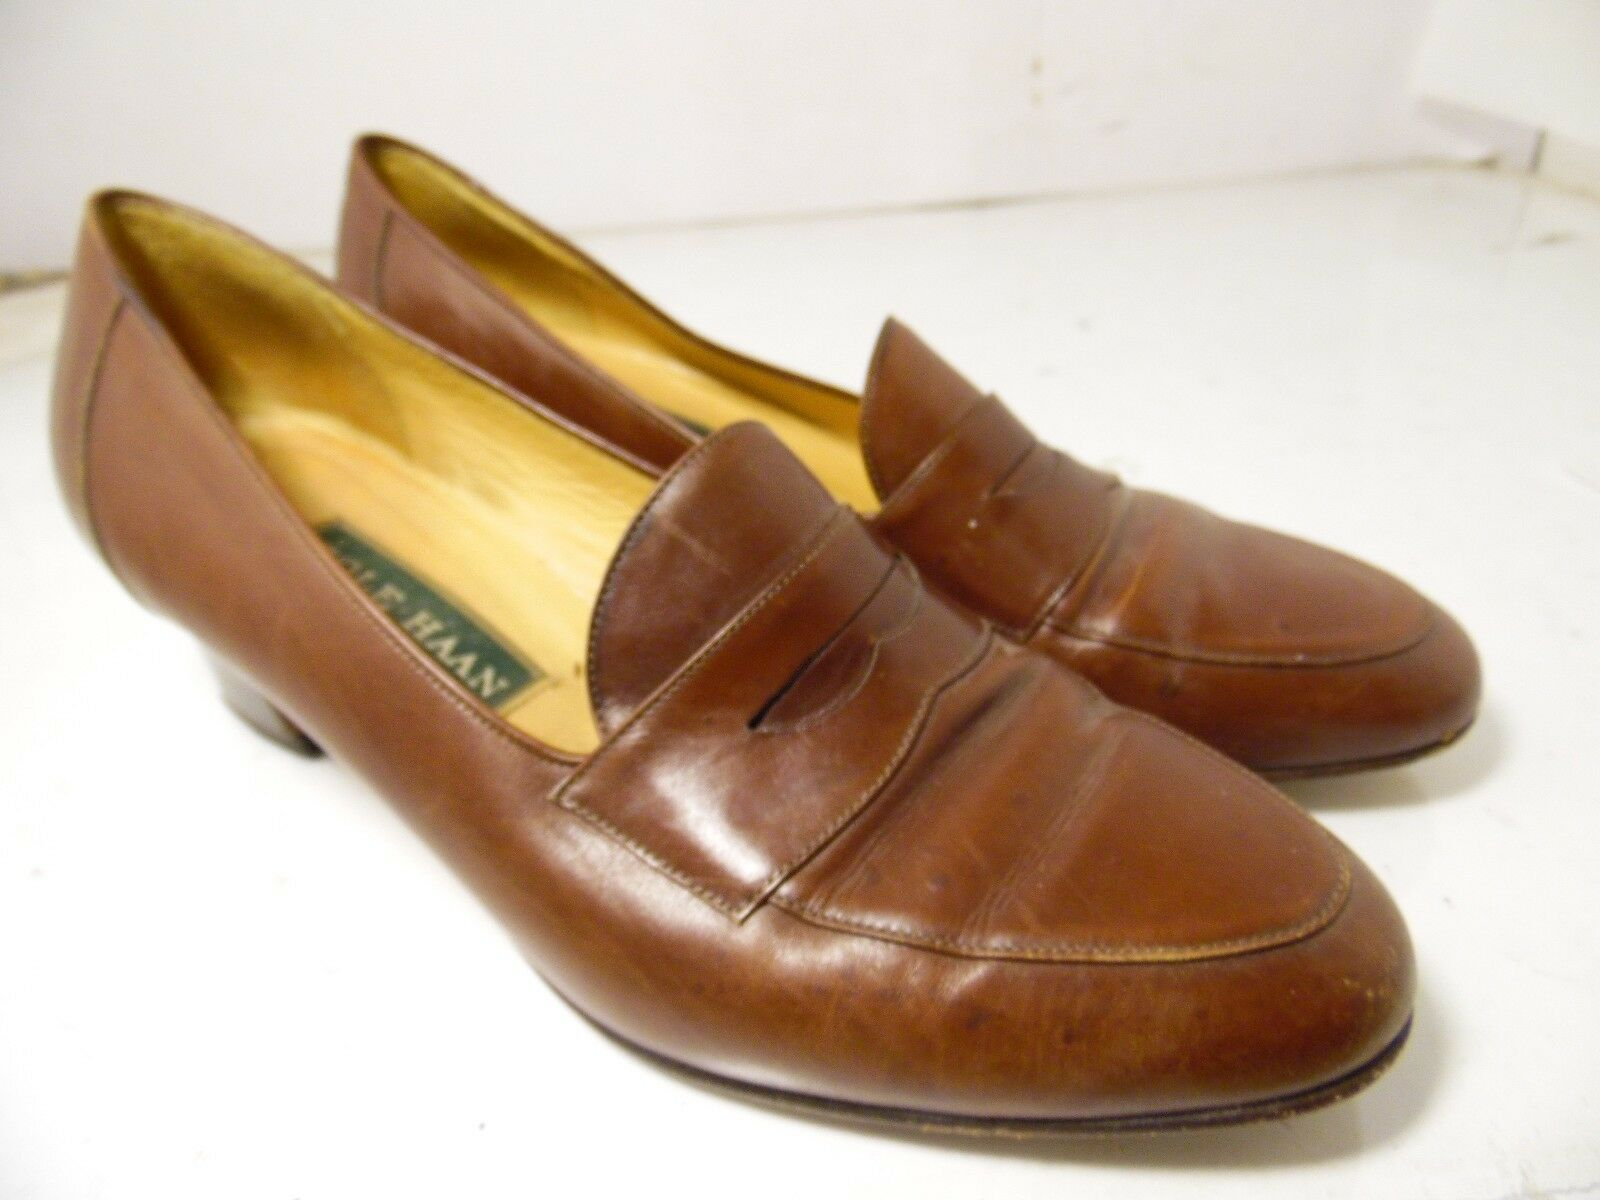 Cole Haan Slip Brown Leather Kitten Heels Slip Haan On Womens Size 6.5 B Made in Italy 2b76eb